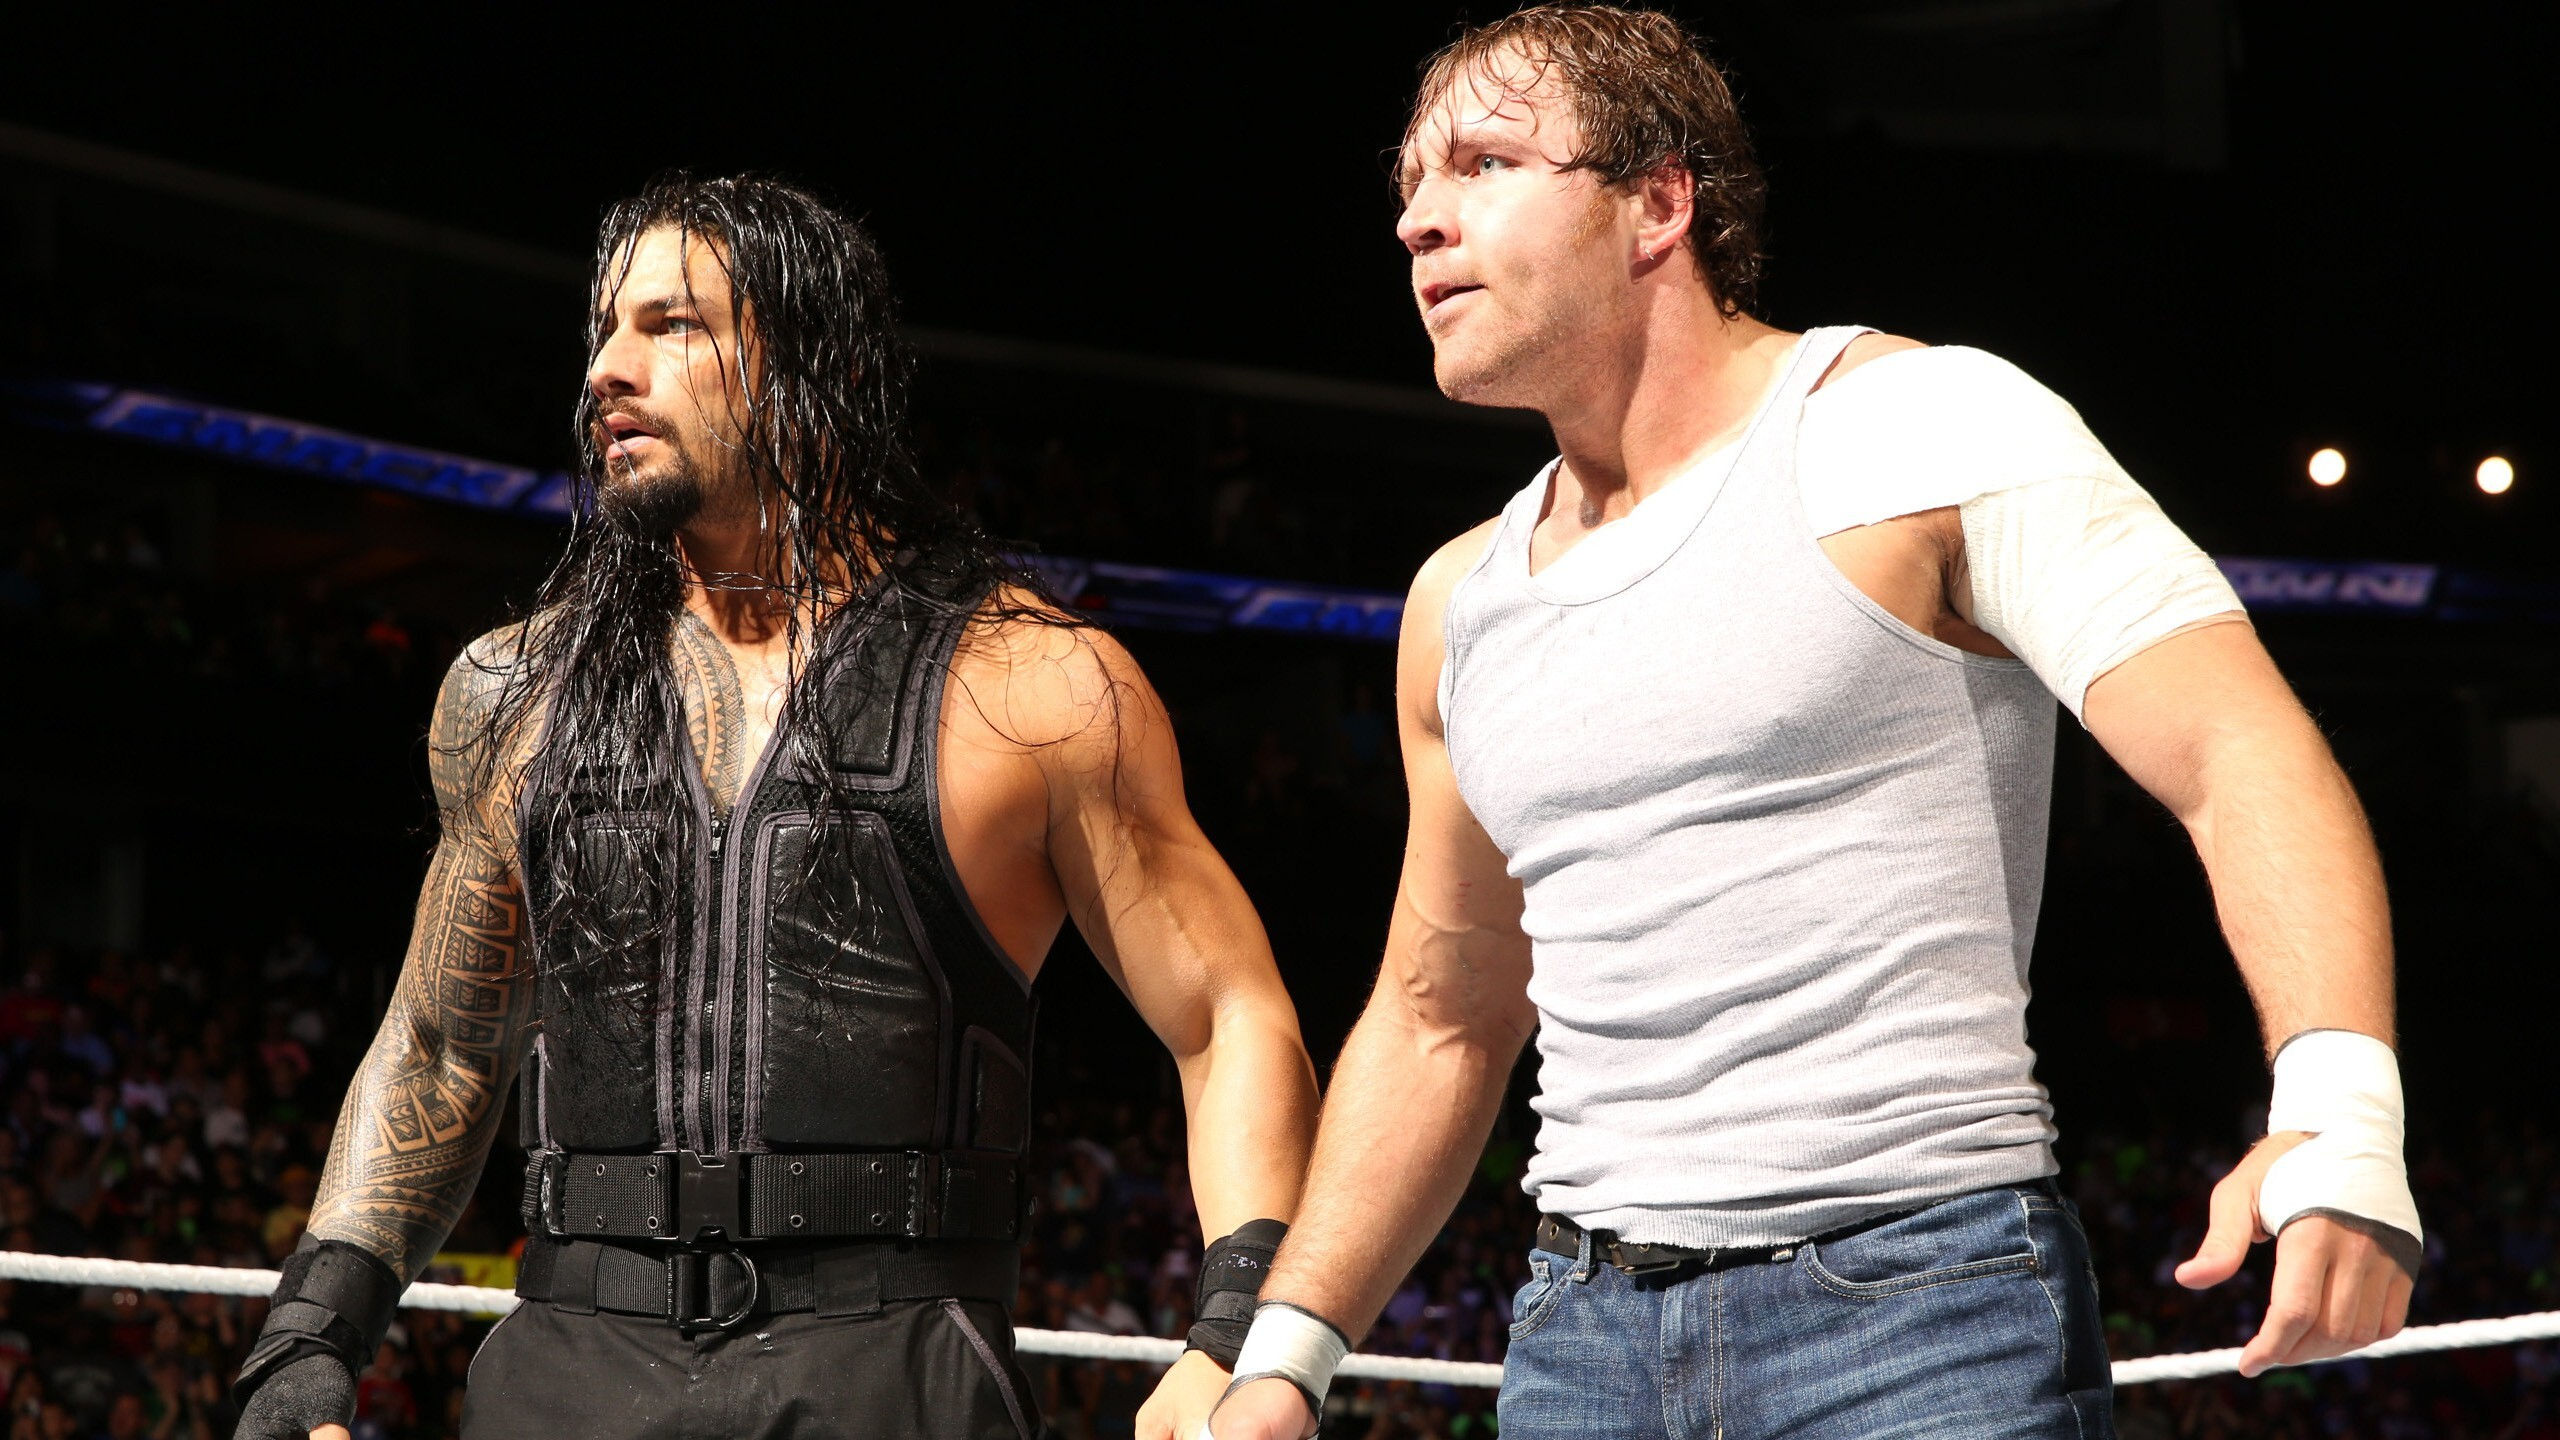 Roman Reigns And Dean Ambrose In Wwe Hd Wallpapers